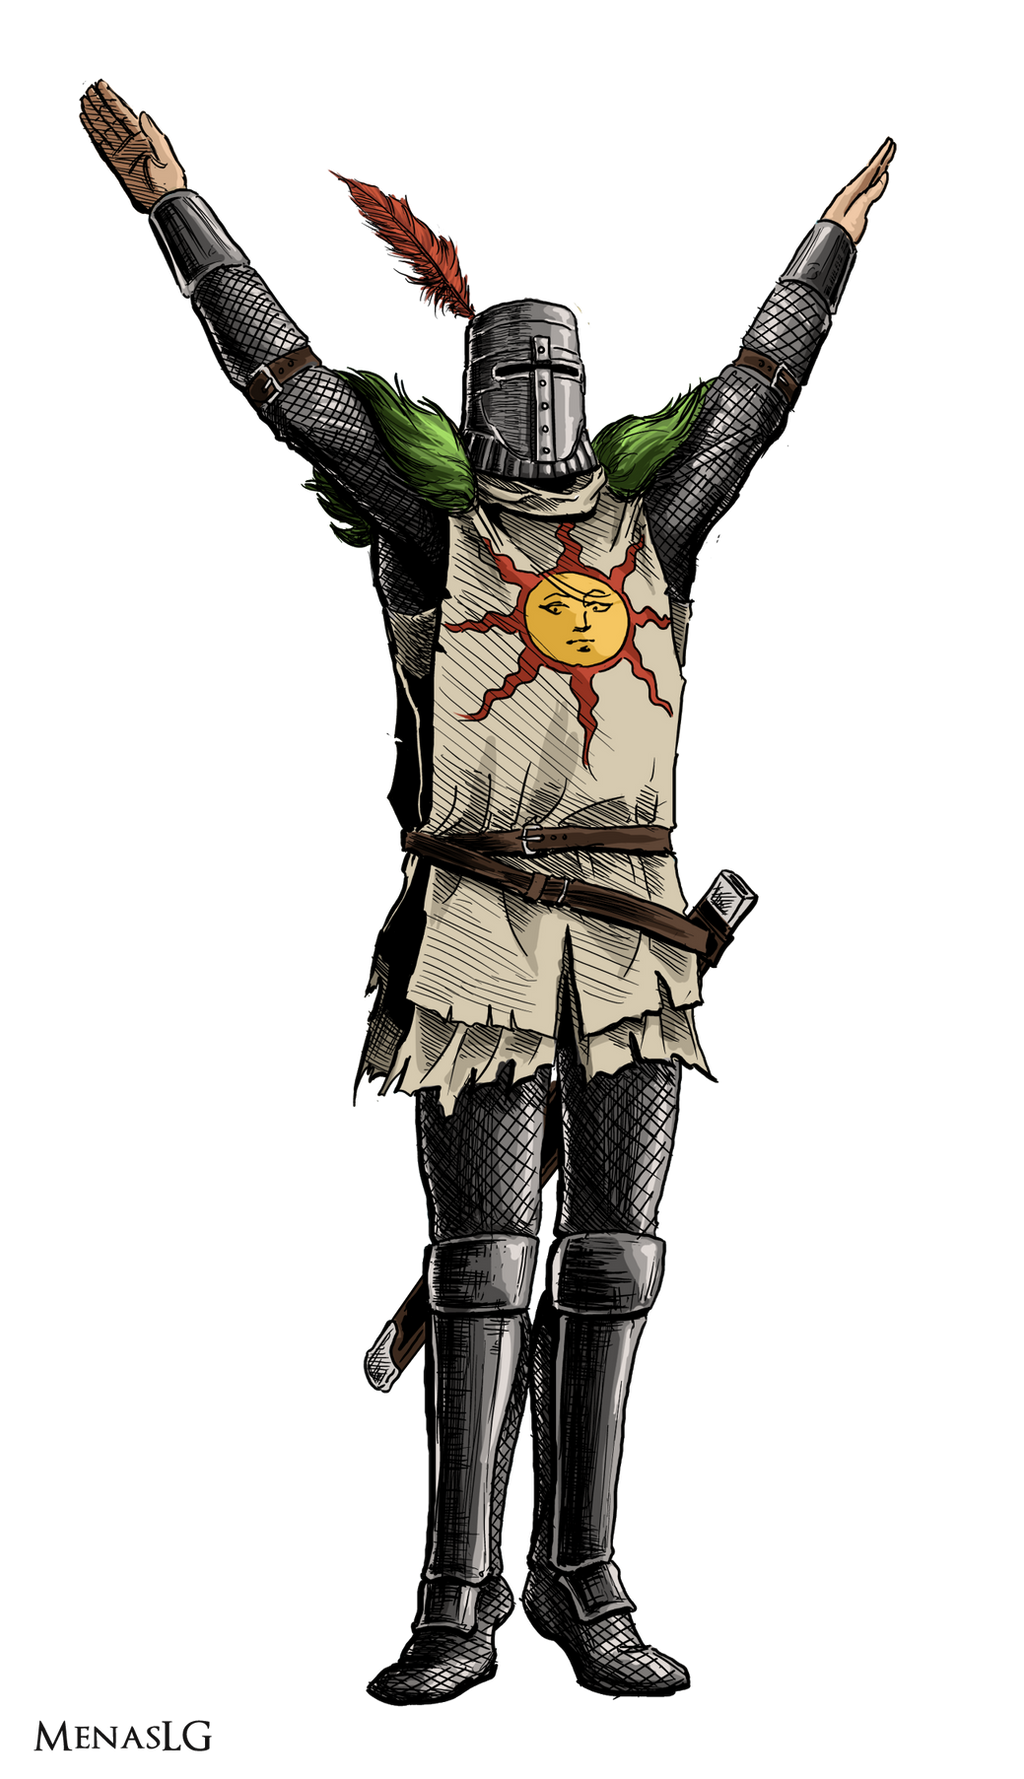 solaire iphone wallpaper - photo #39